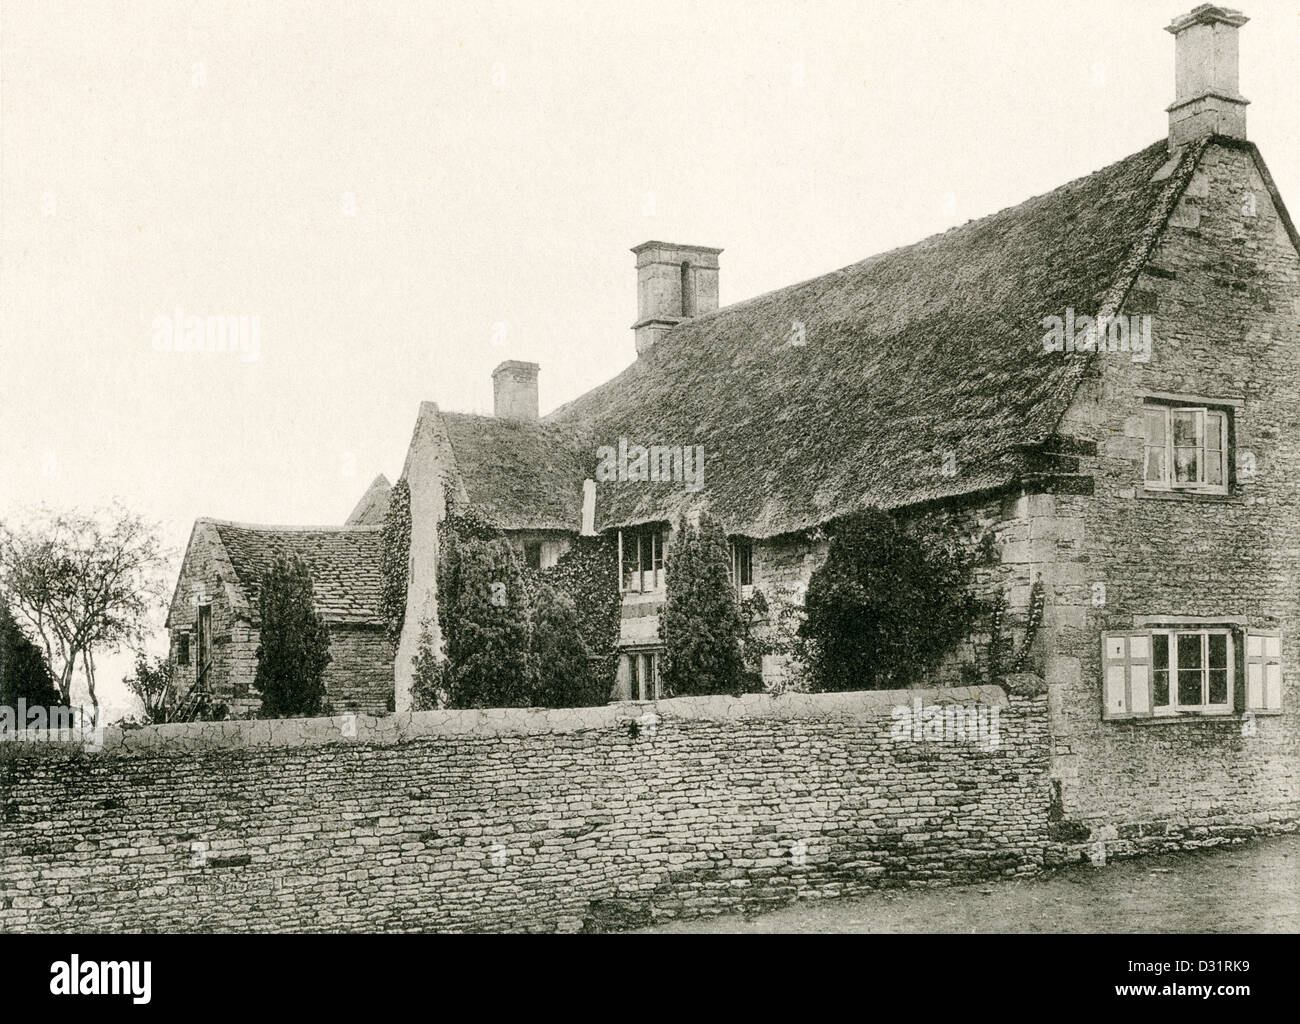 A collotype plate entitled ' A Farmhouse at Gretton, Northants.' from a book published in 1905. - Stock Image